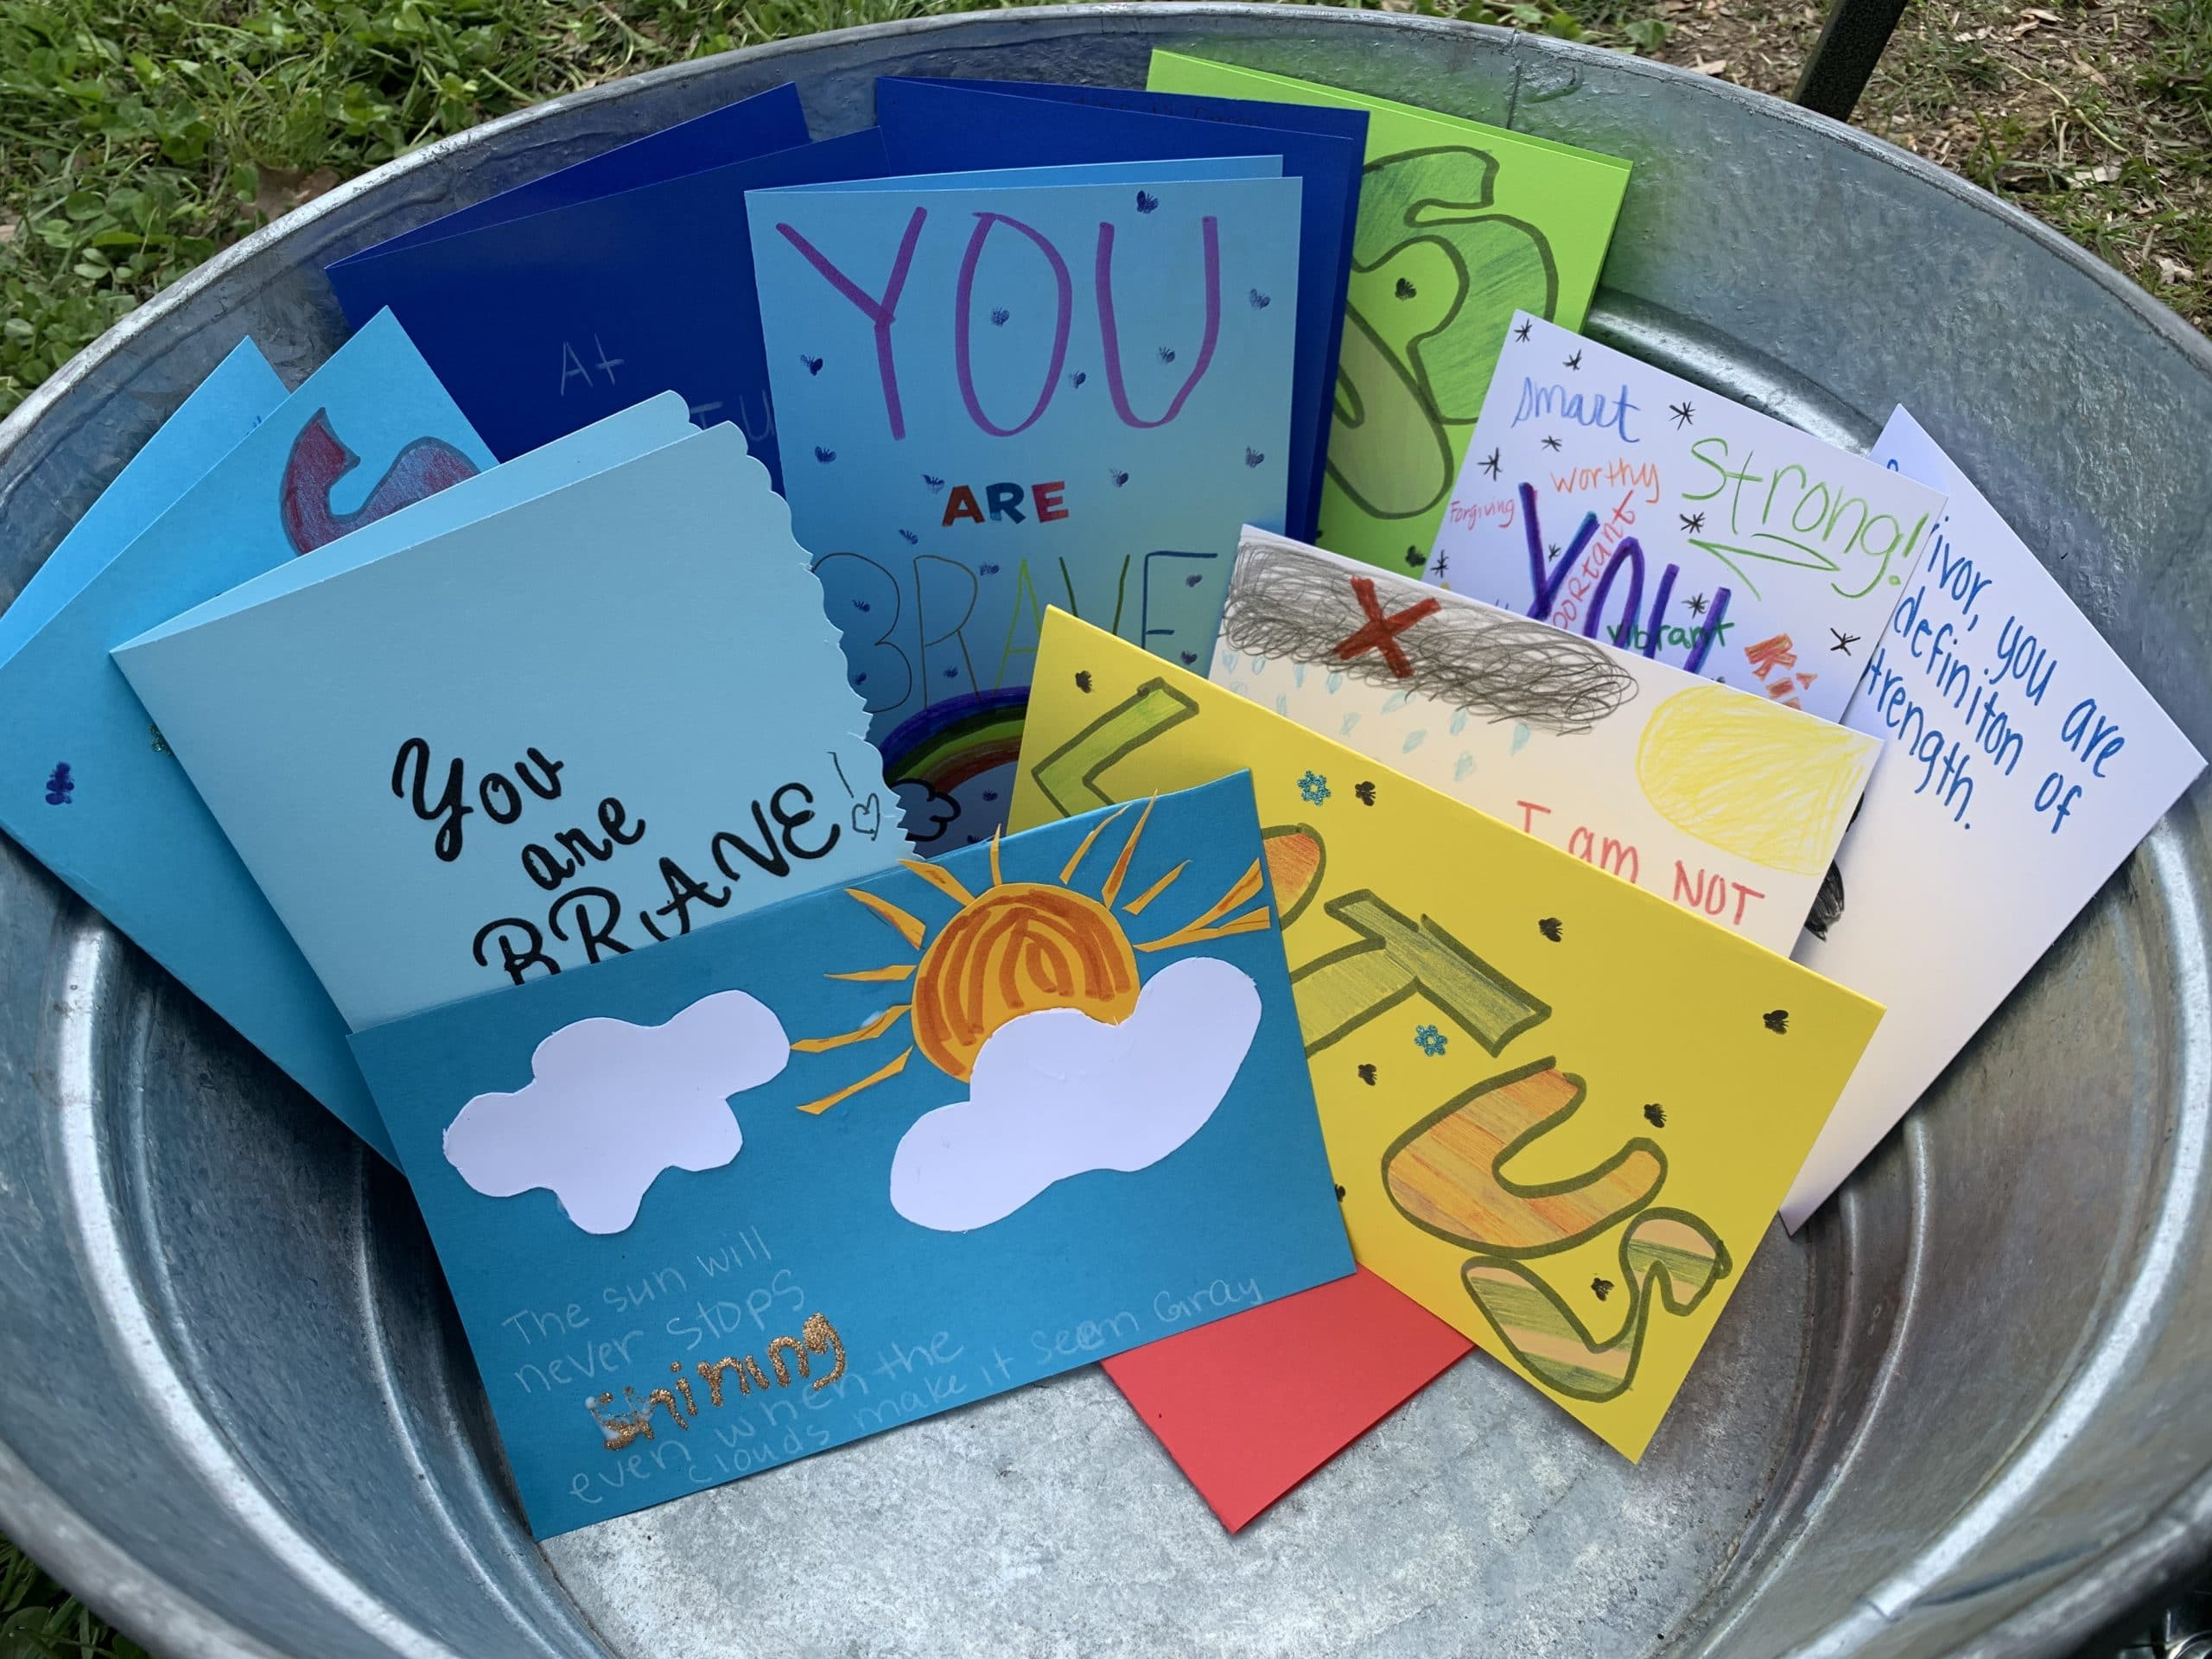 Cards with messages of support for survivors in a metal tub